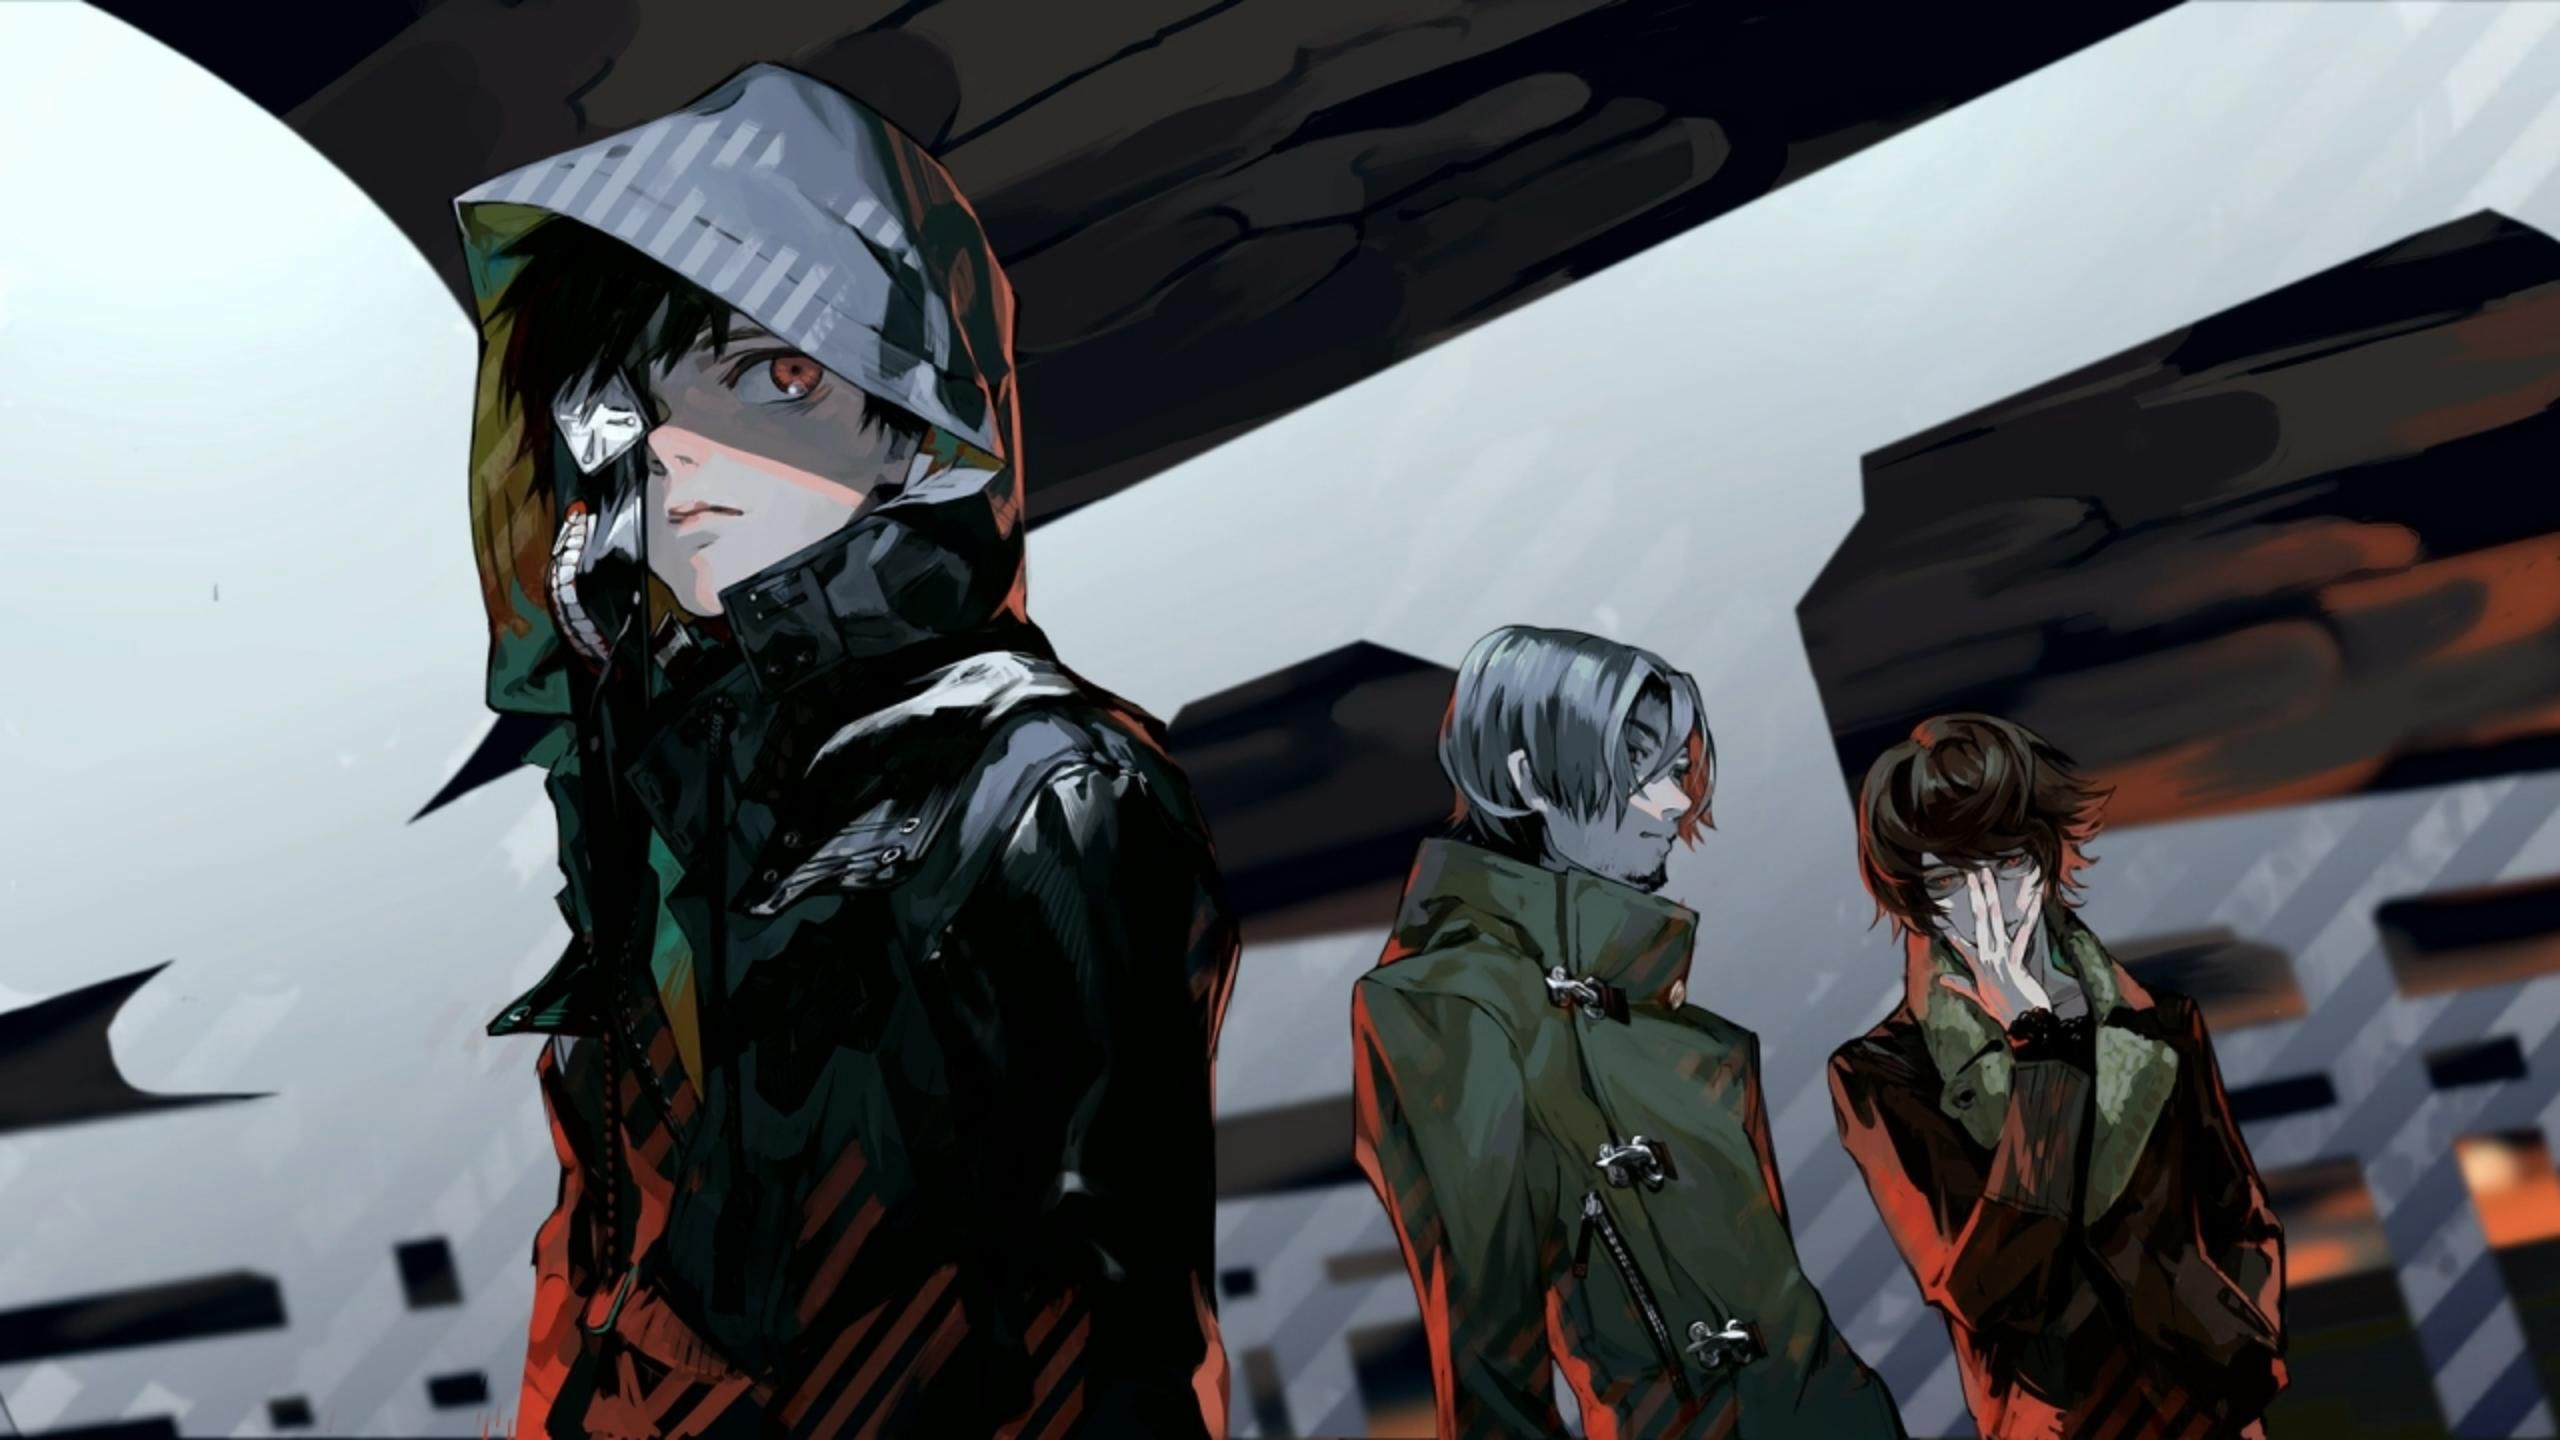 Google themes anime tokyo ghoul - Tokyo Ghoul Has Been In The News For The Last Few Months The First Season Of The Anime Is Making Its Way To The Homes Of Viewers On Blu Ray The Sequel To